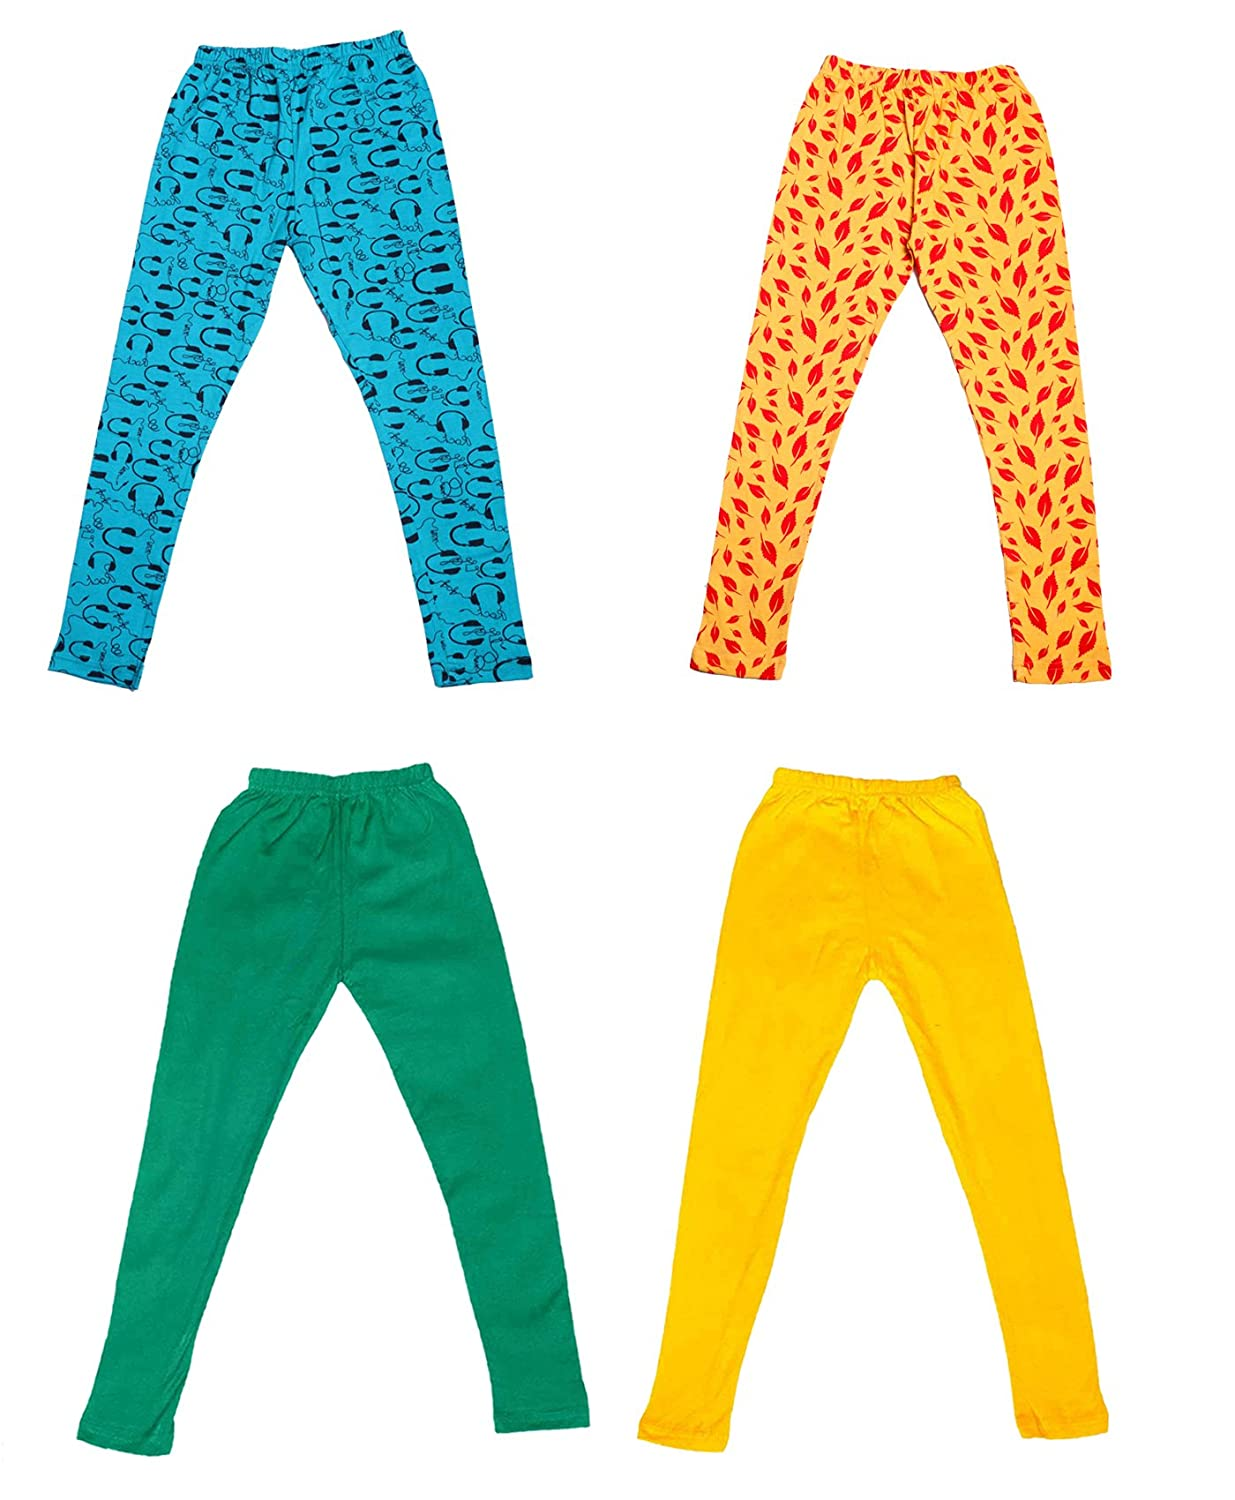 and 2 Cotton Printed Legging Pants Pack Of 4 /_Multicolor/_Size-7-8 Years/_71406071718-IW-P4-30 Indistar Girls 2 Cotton Solid Legging Pants